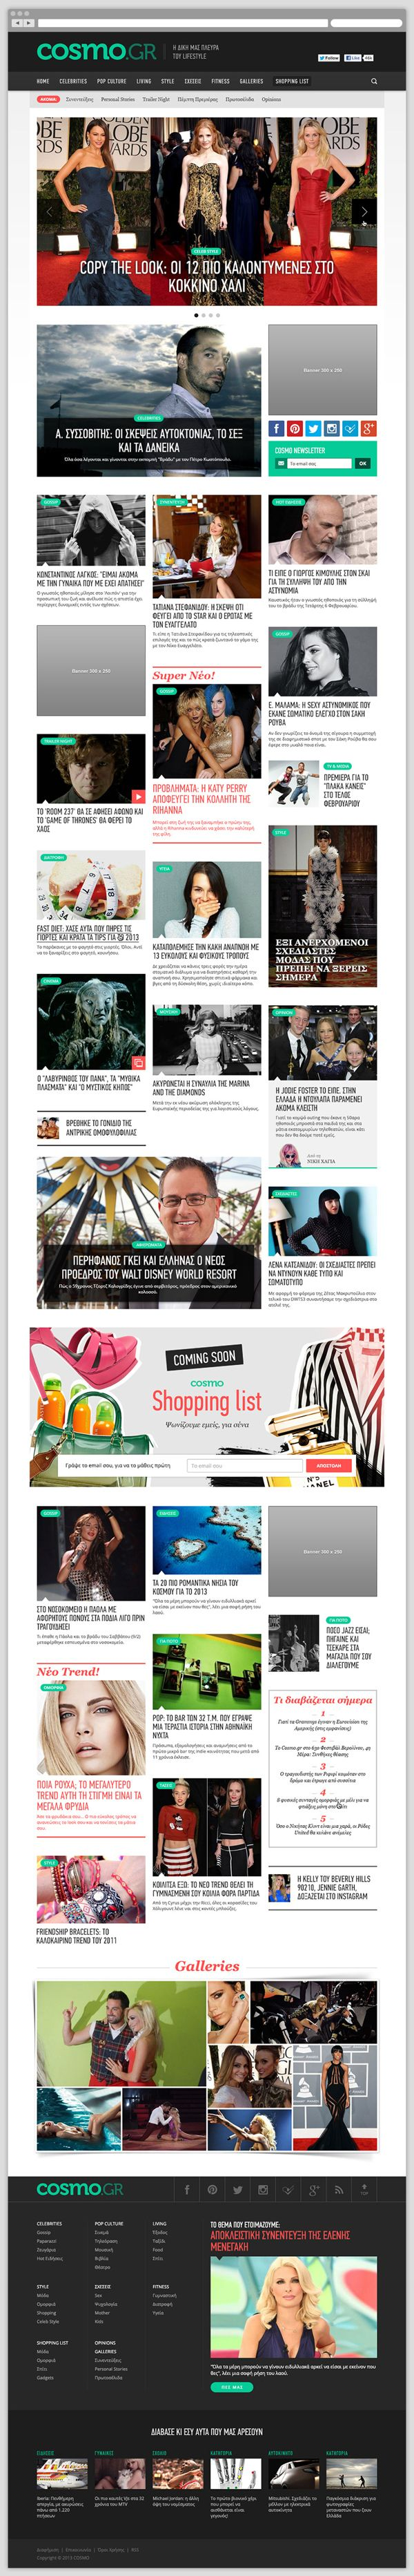 Cosmo.gr by Radial, via Behance